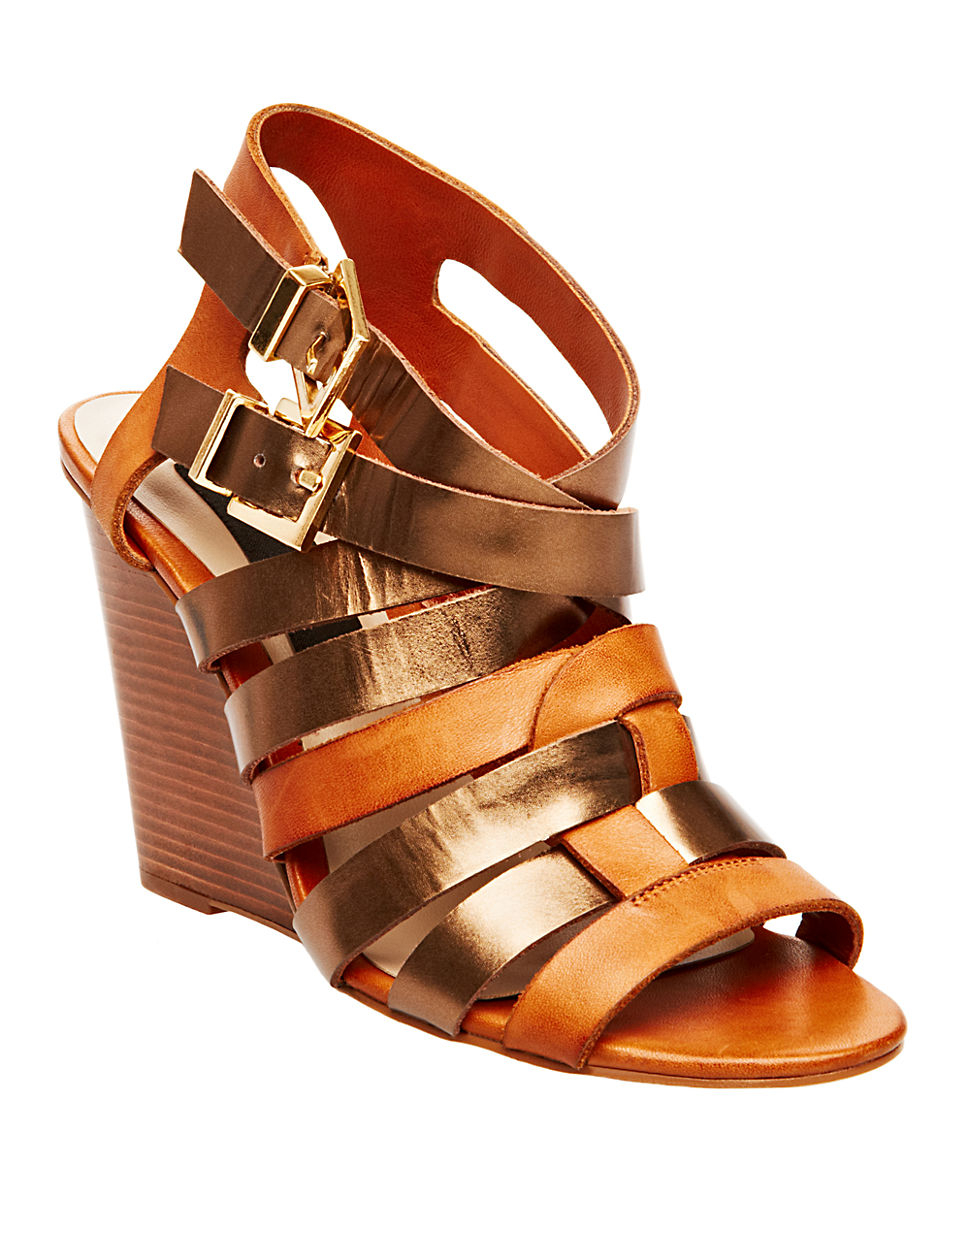 steven by steve madden midori leather wedge sandals in brown cognac. Black Bedroom Furniture Sets. Home Design Ideas